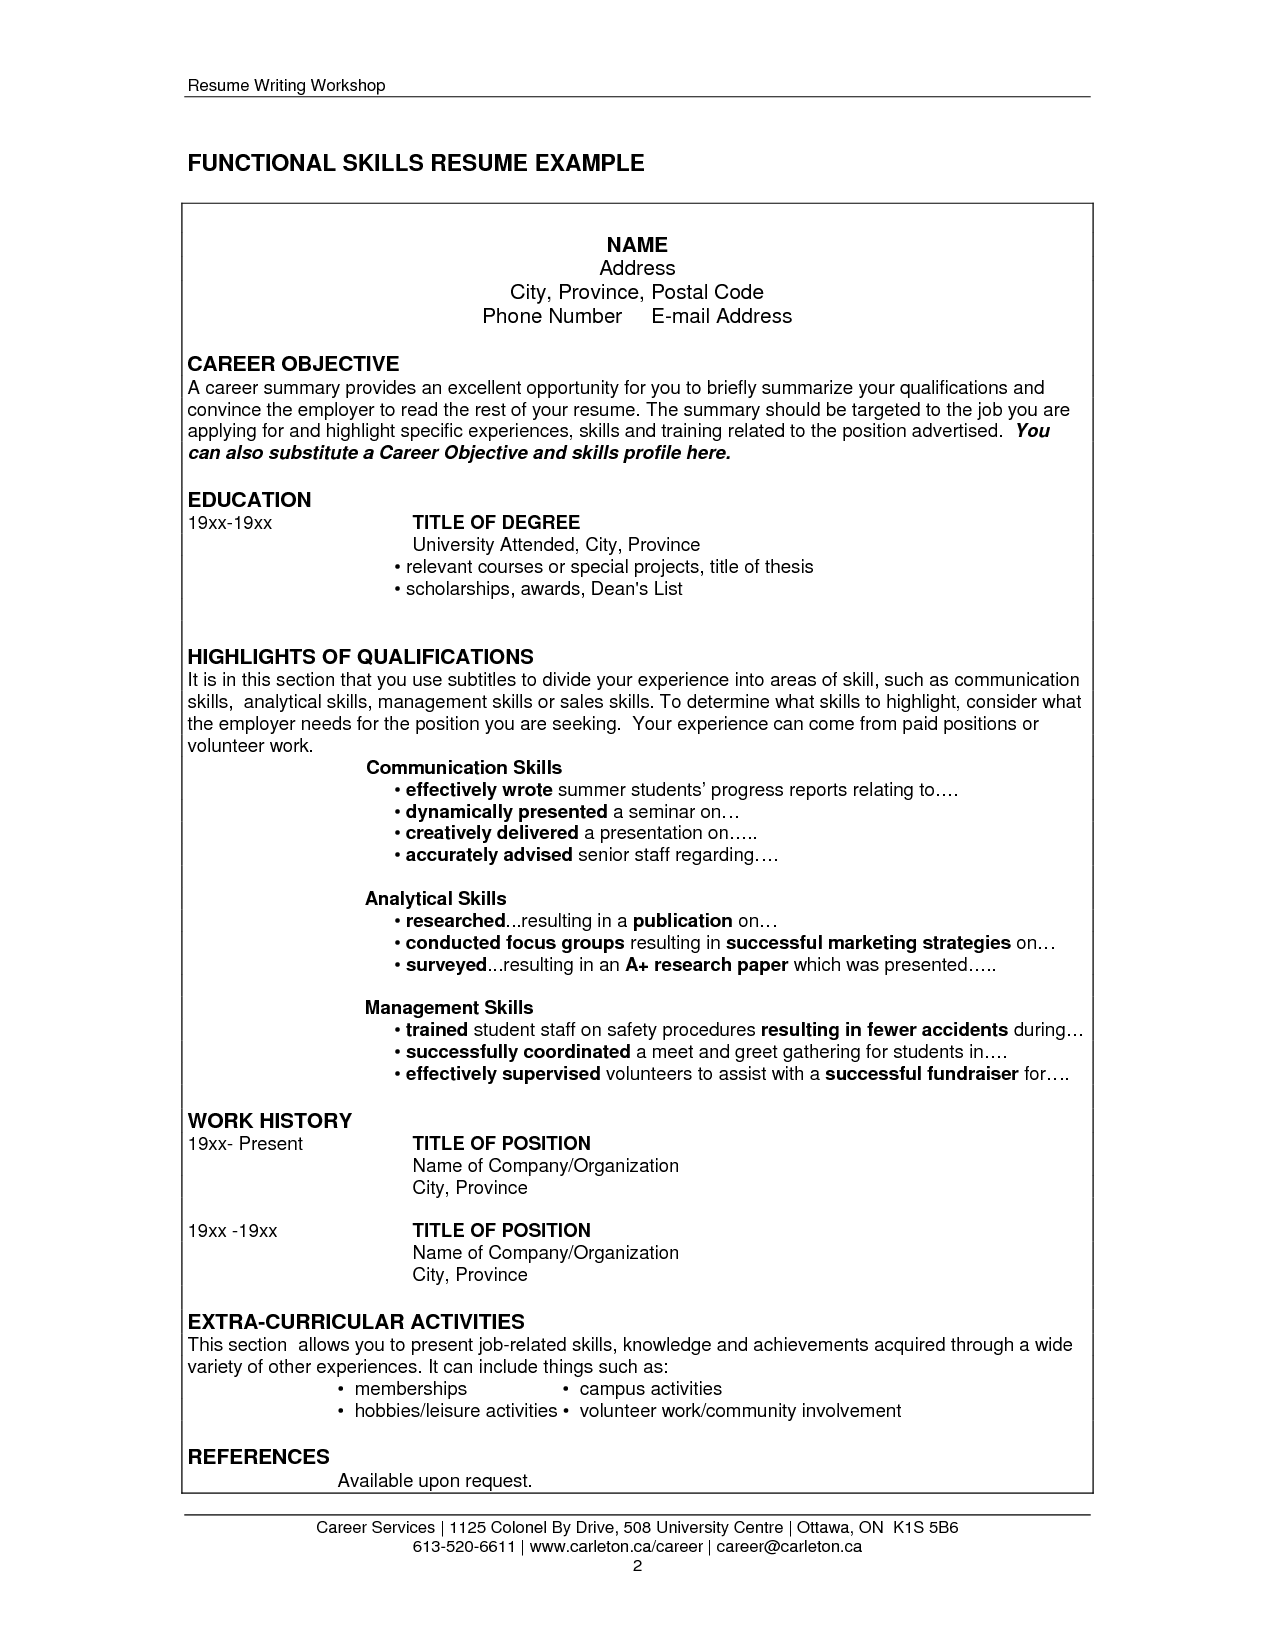 Skills Resume Template Image Result For Skills Resume Format  Business  Pinterest